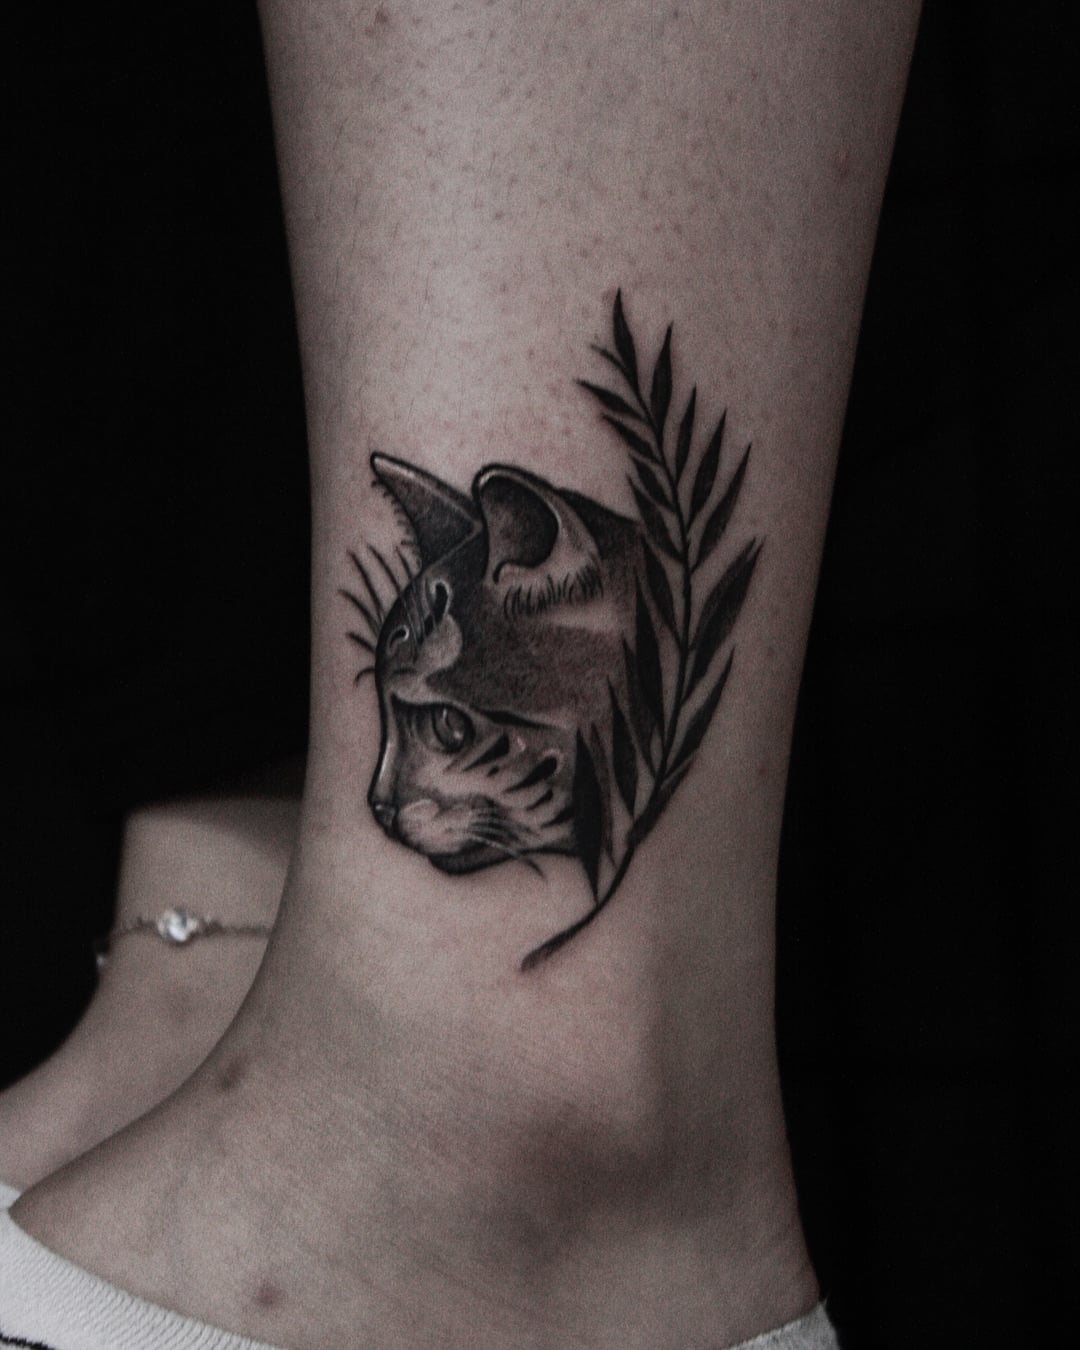 155 Extremely Adorable Cat Tattoos You Should Get This Year